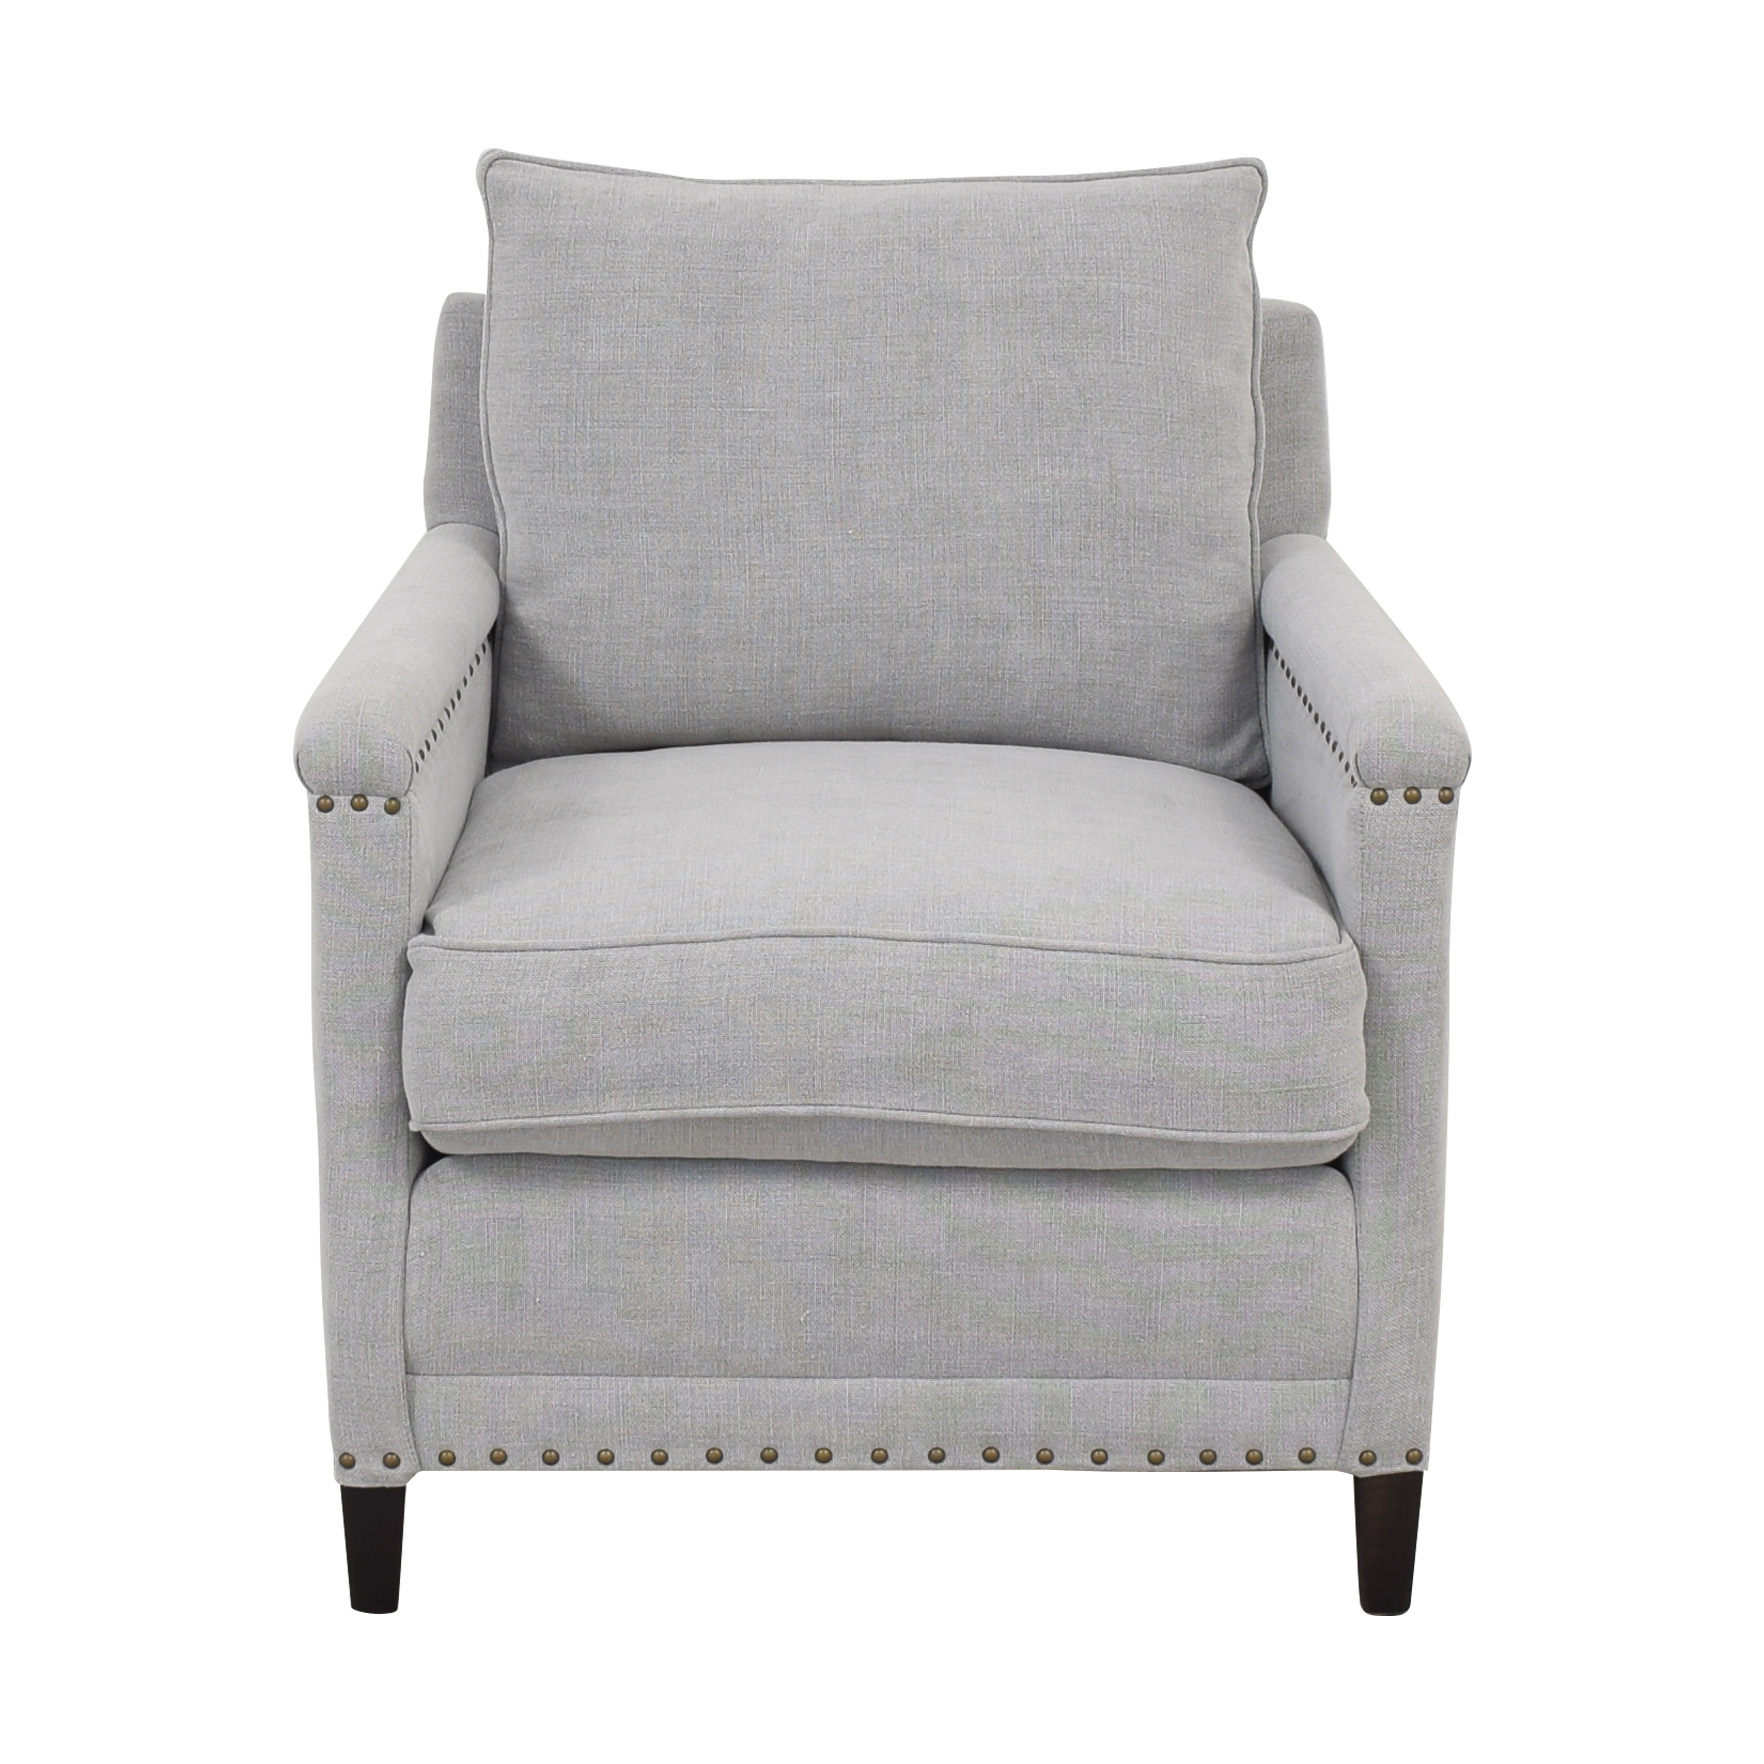 Williams Sonoma Williams Sonoma Addison Chair with Nailheads Accent Chairs